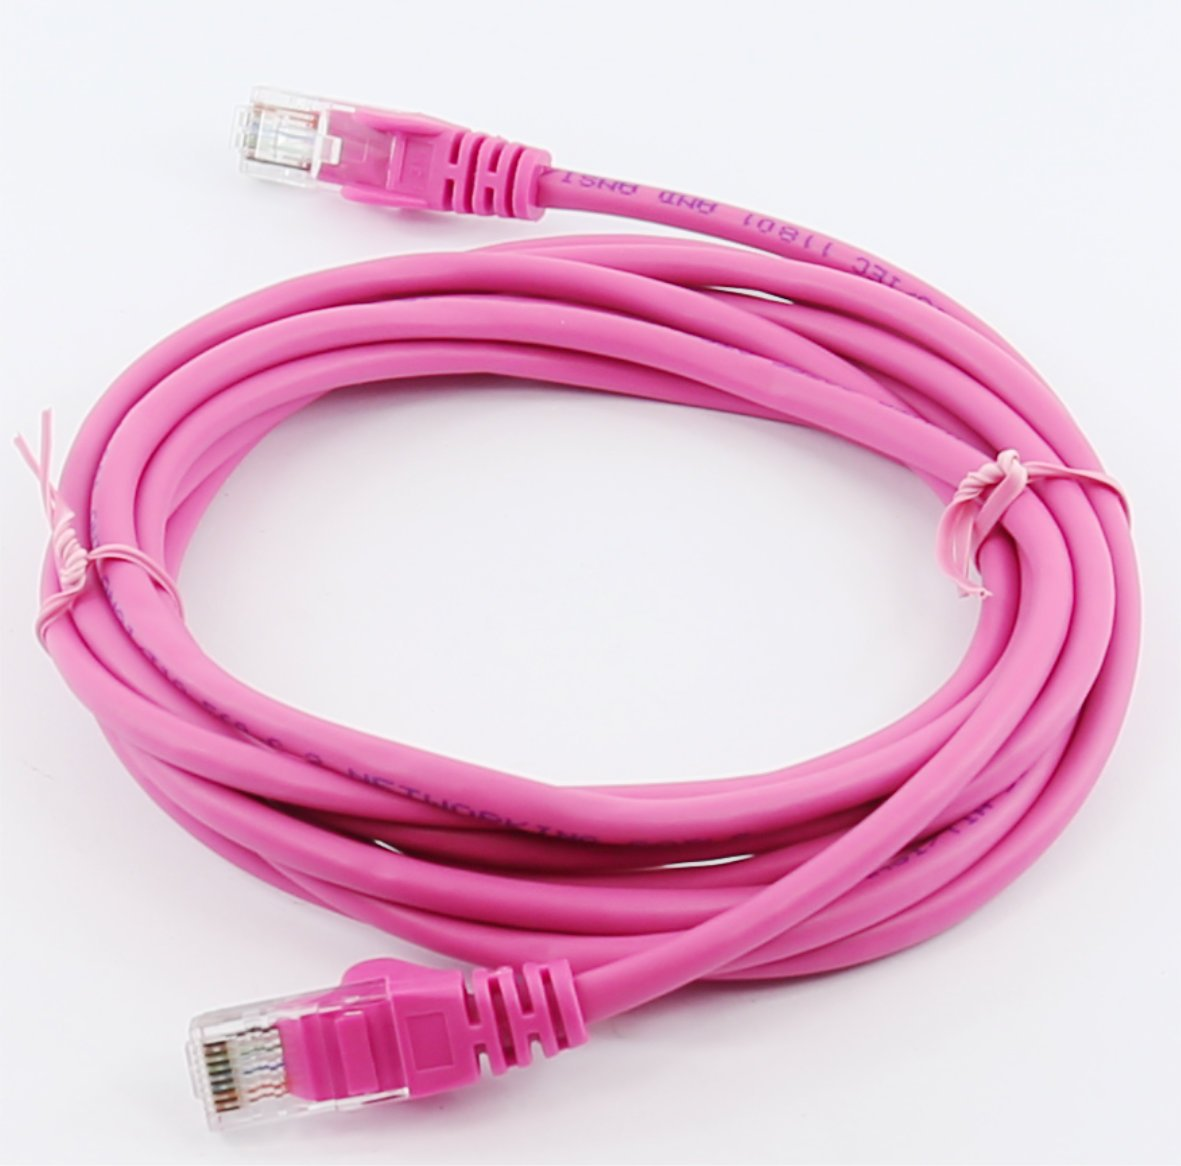 16ft 5in, Pink rhinocables Cat 5e Cat5e Ethernet RJ45 High Speed Network Cable Internet Fast Speed Lead